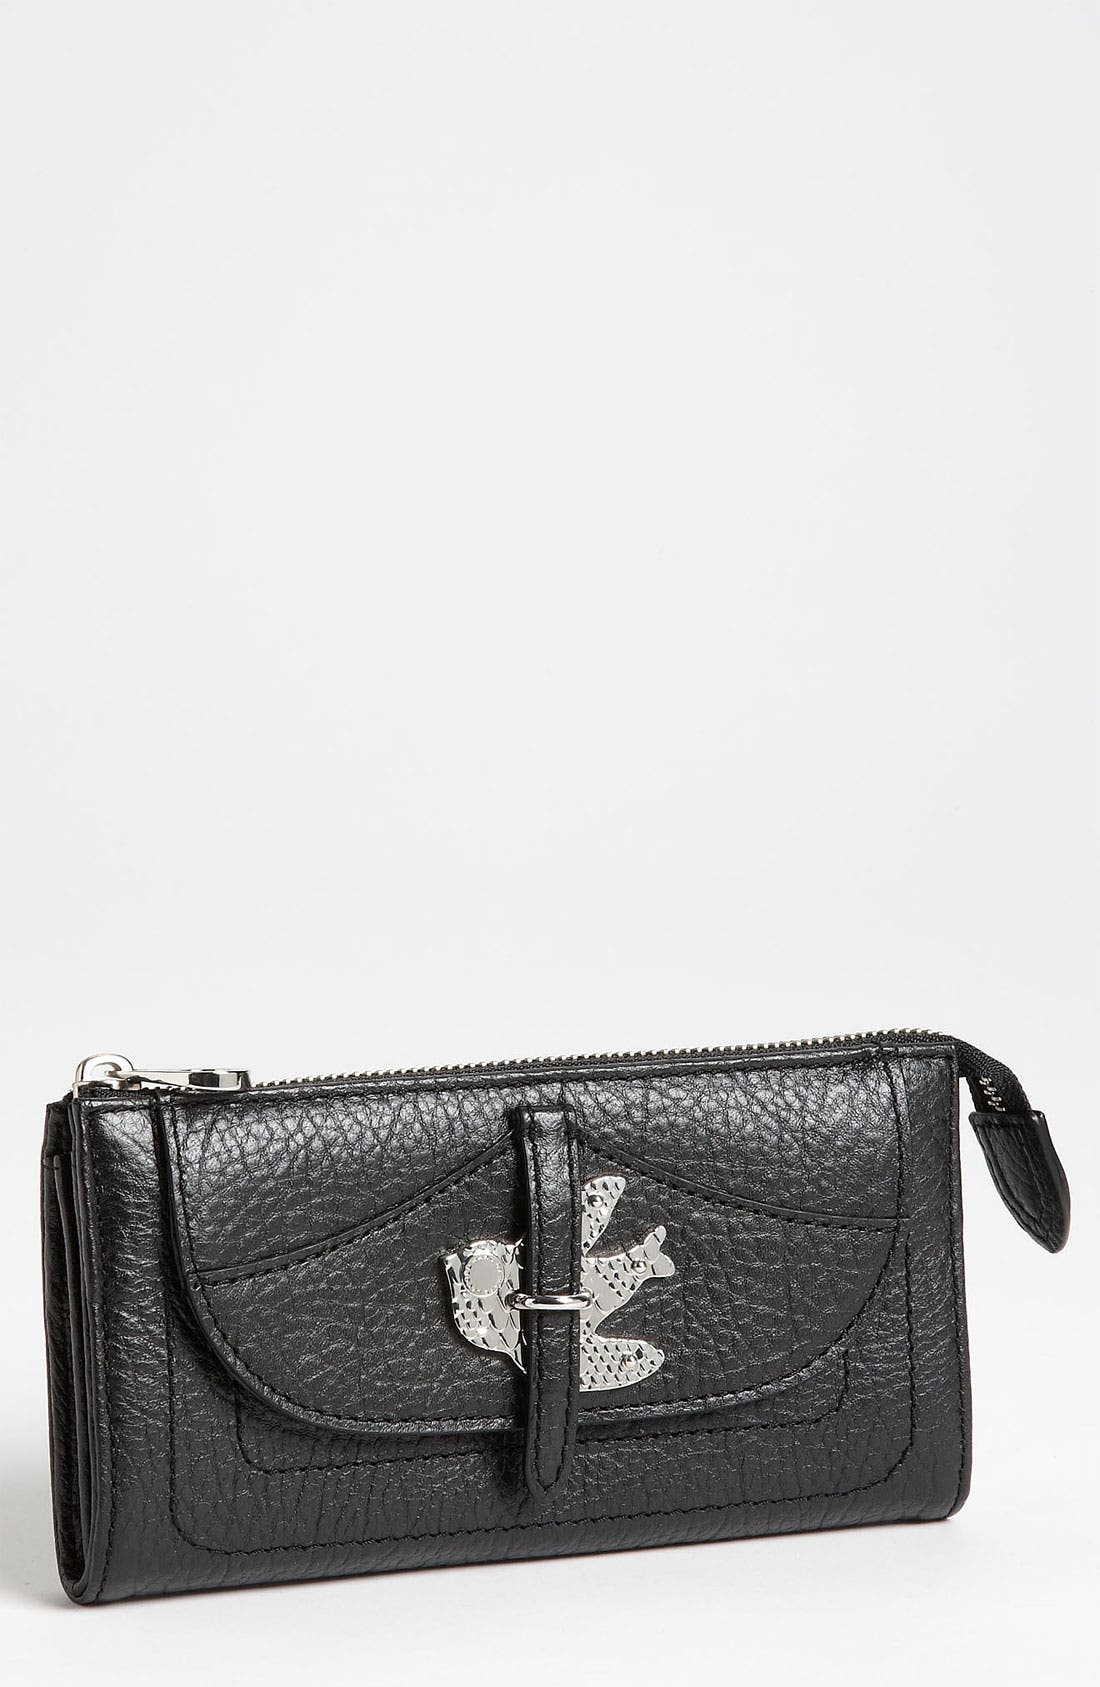 Alternate Image 1 Selected - MARC BY MARC JACOBS 'Petal to the Metal' Clutch